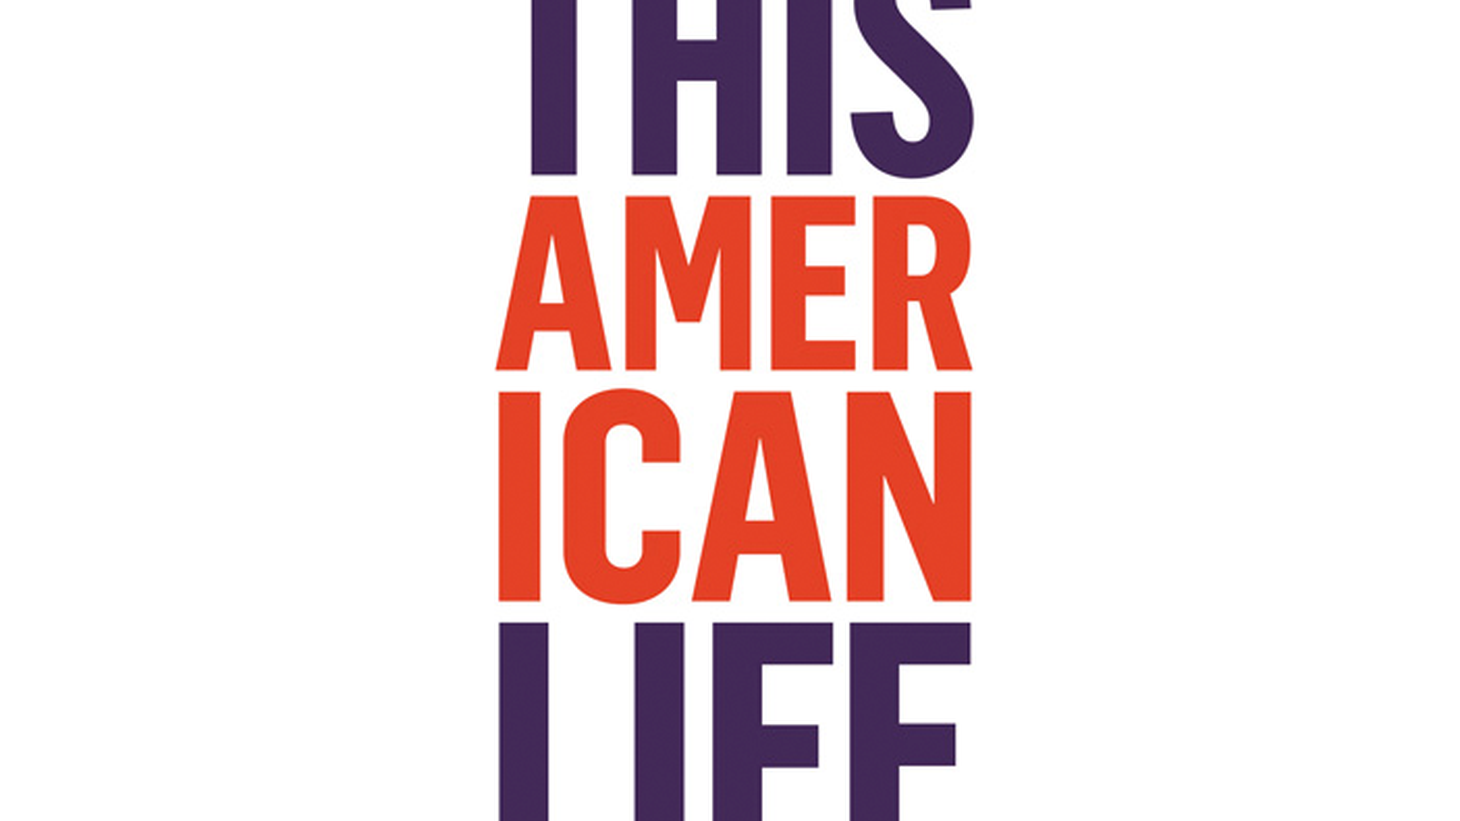 This is the 100th episode of This American Life. A radio show about the pleasures of radio. Including a day with one of the consultants who makes commercial radio what it is today. And those ephemeral, thrilling radio moments that you happen to catch, in passing, on stations far away that you never find again.